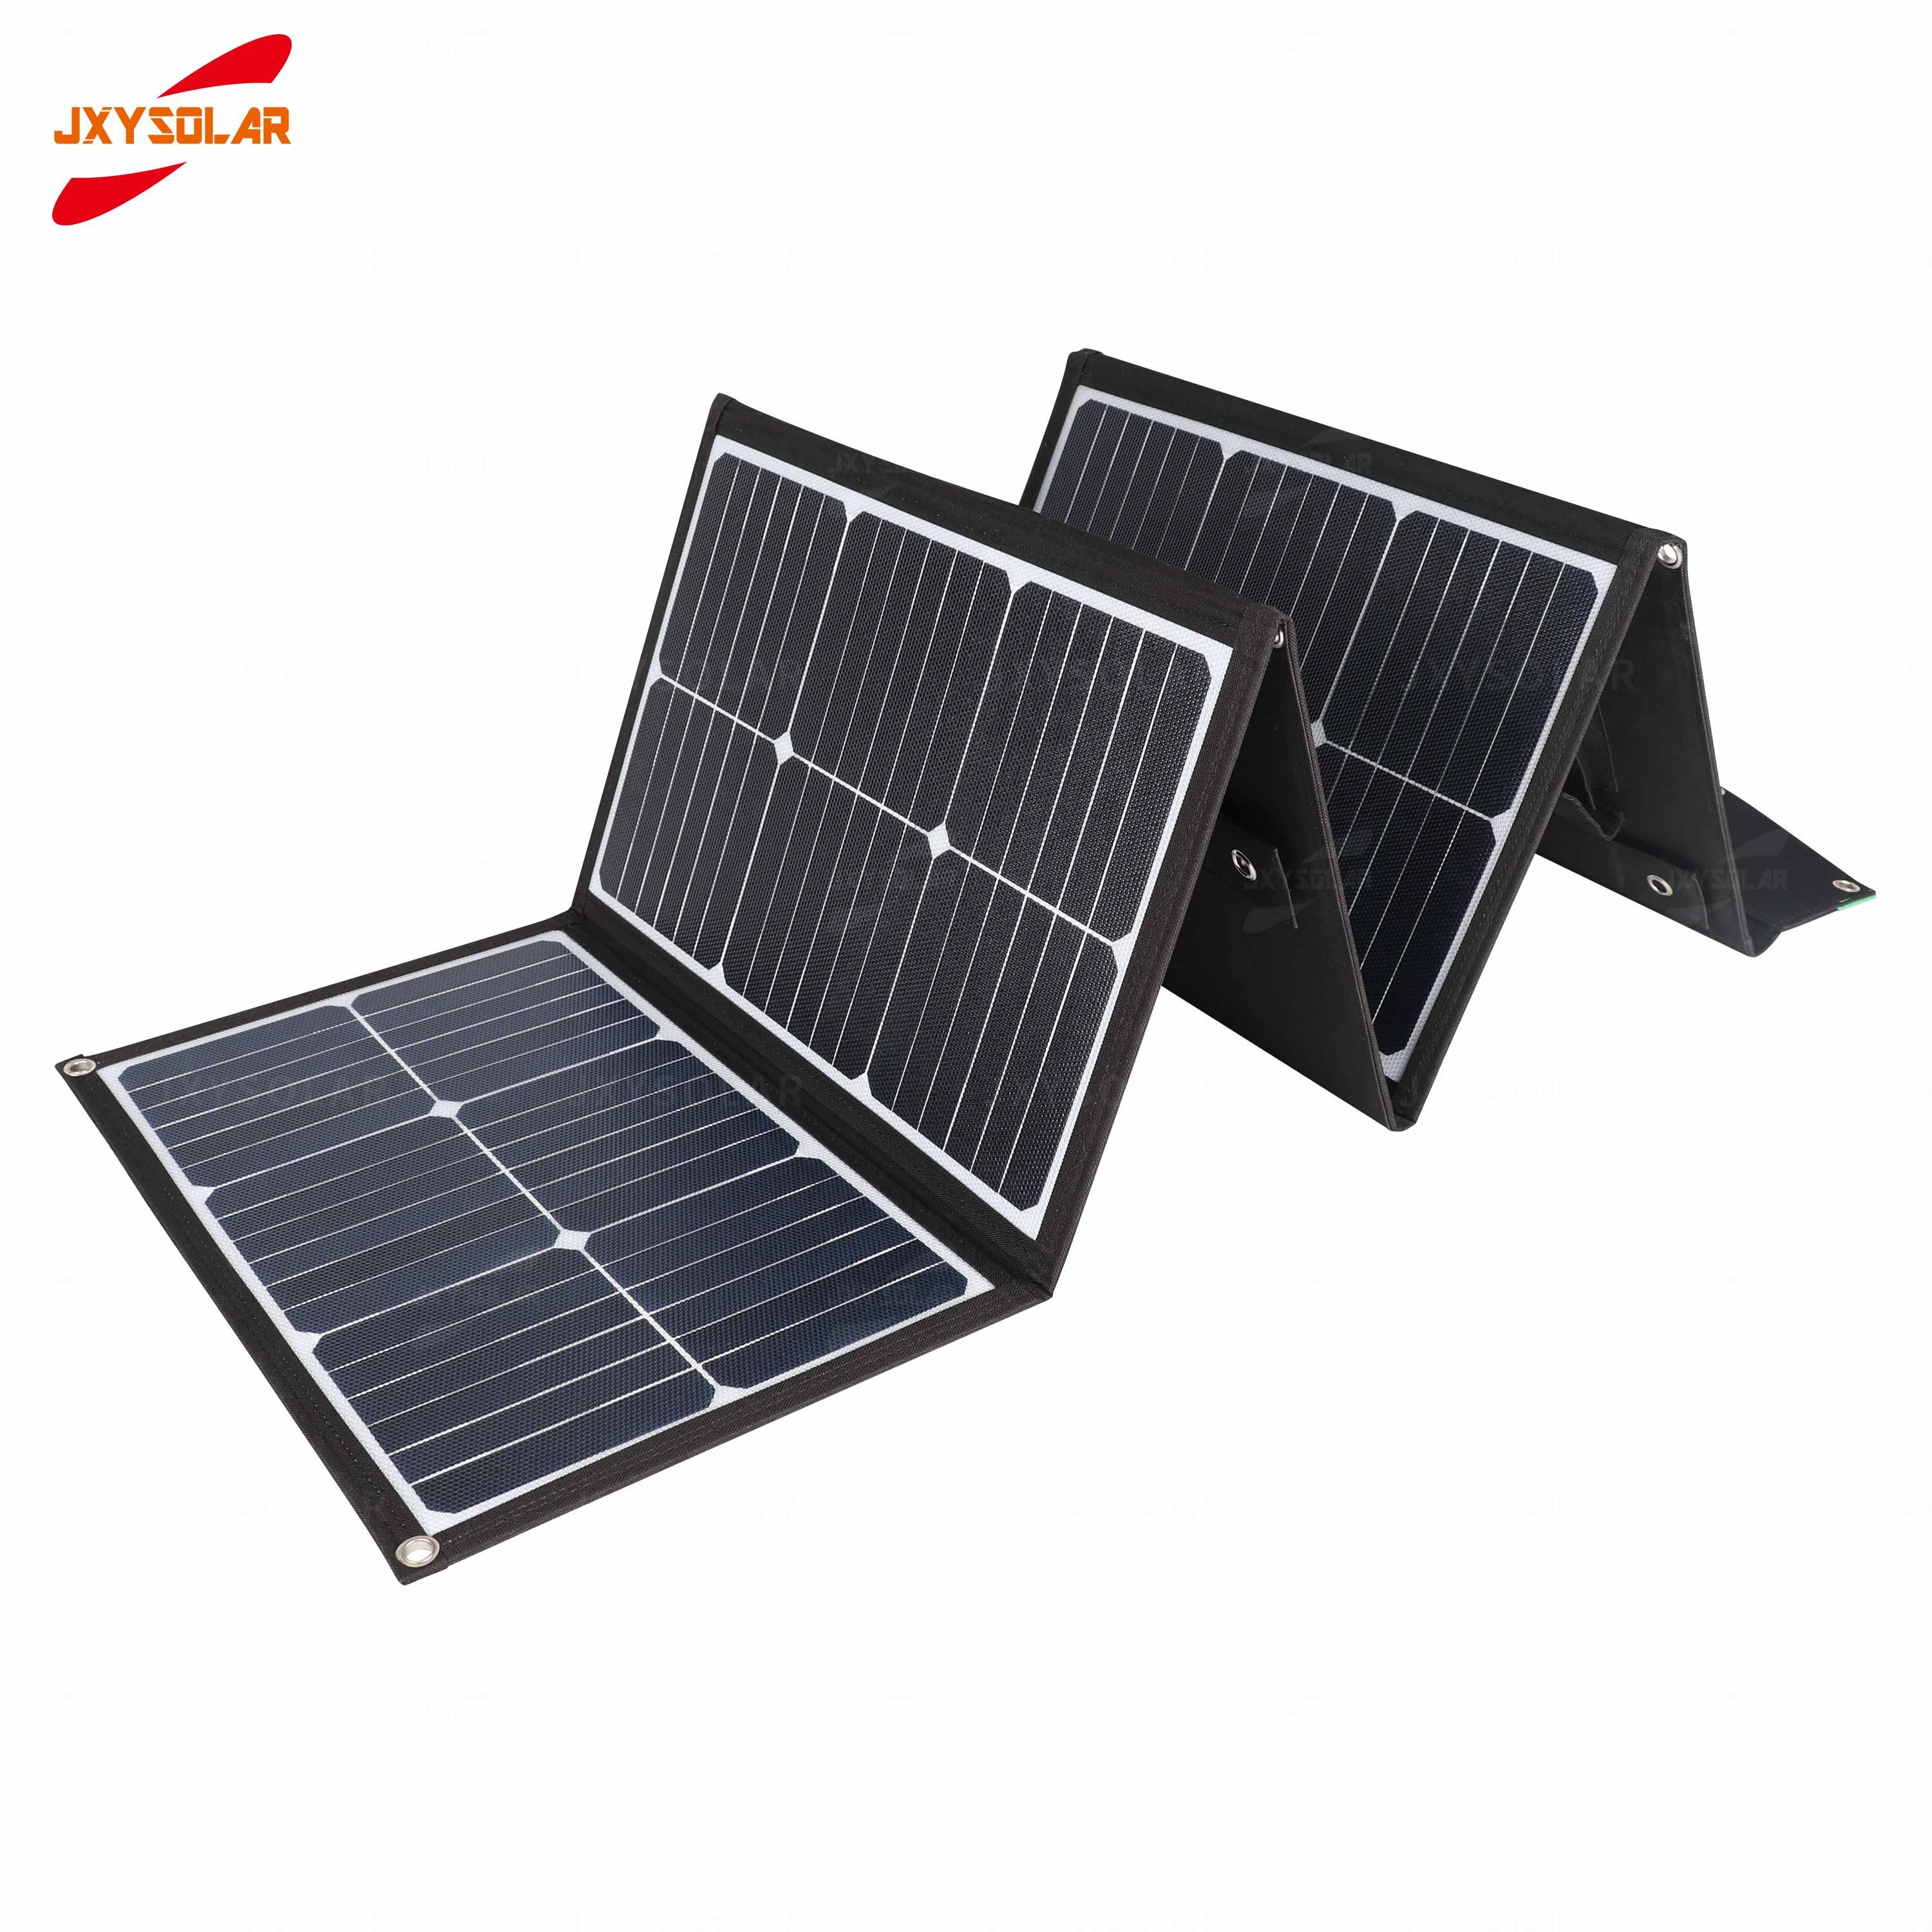 Factory Wholesale Popular Foldable Solar Panel Blanket Sunpower 150w Portable Folding Charging Kit For Outdoor Camping High Efficient Solar Panels Pv Solar Panels Qld From Jinxysolar 87 44 Dhgate Com